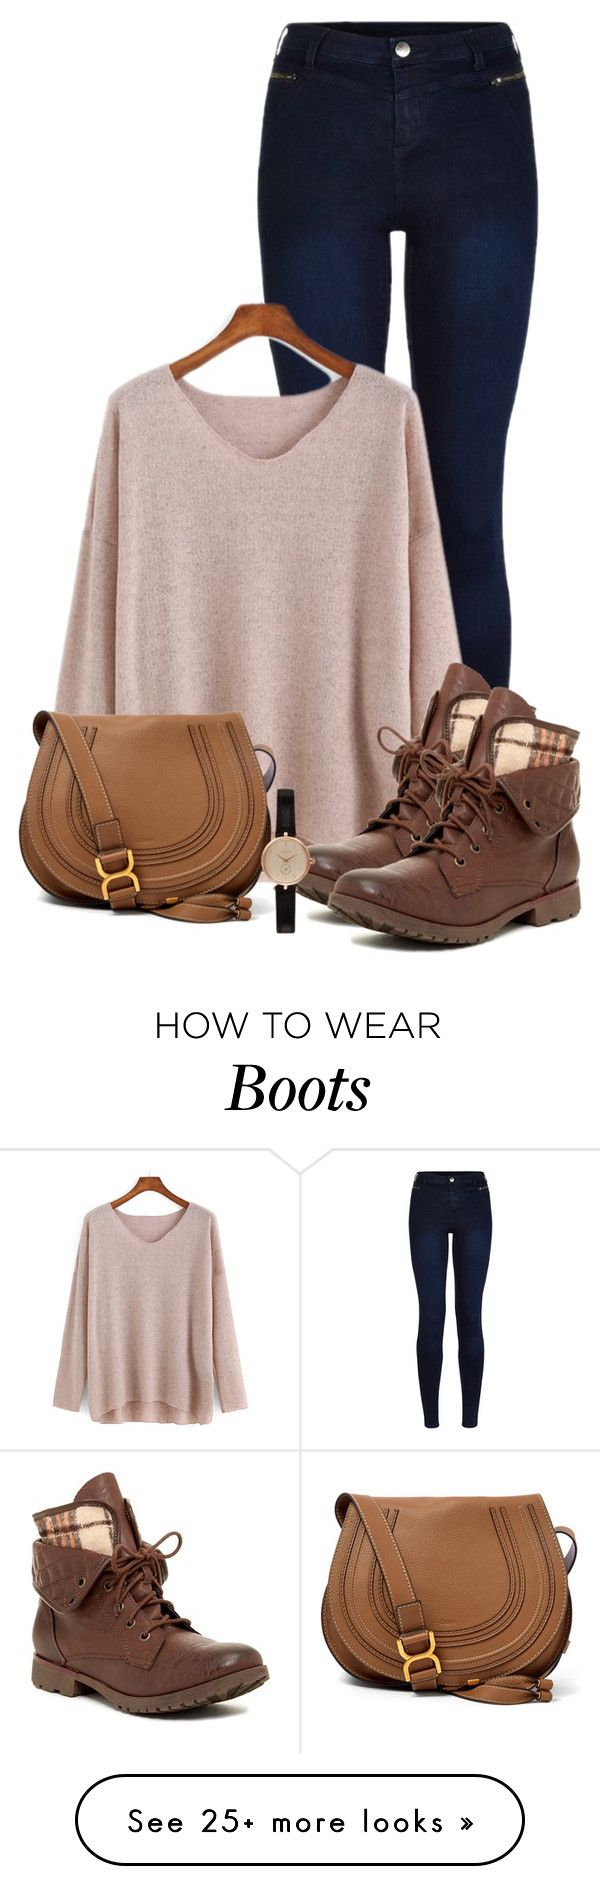 camel shoes polyvore create outfits using real products manufact